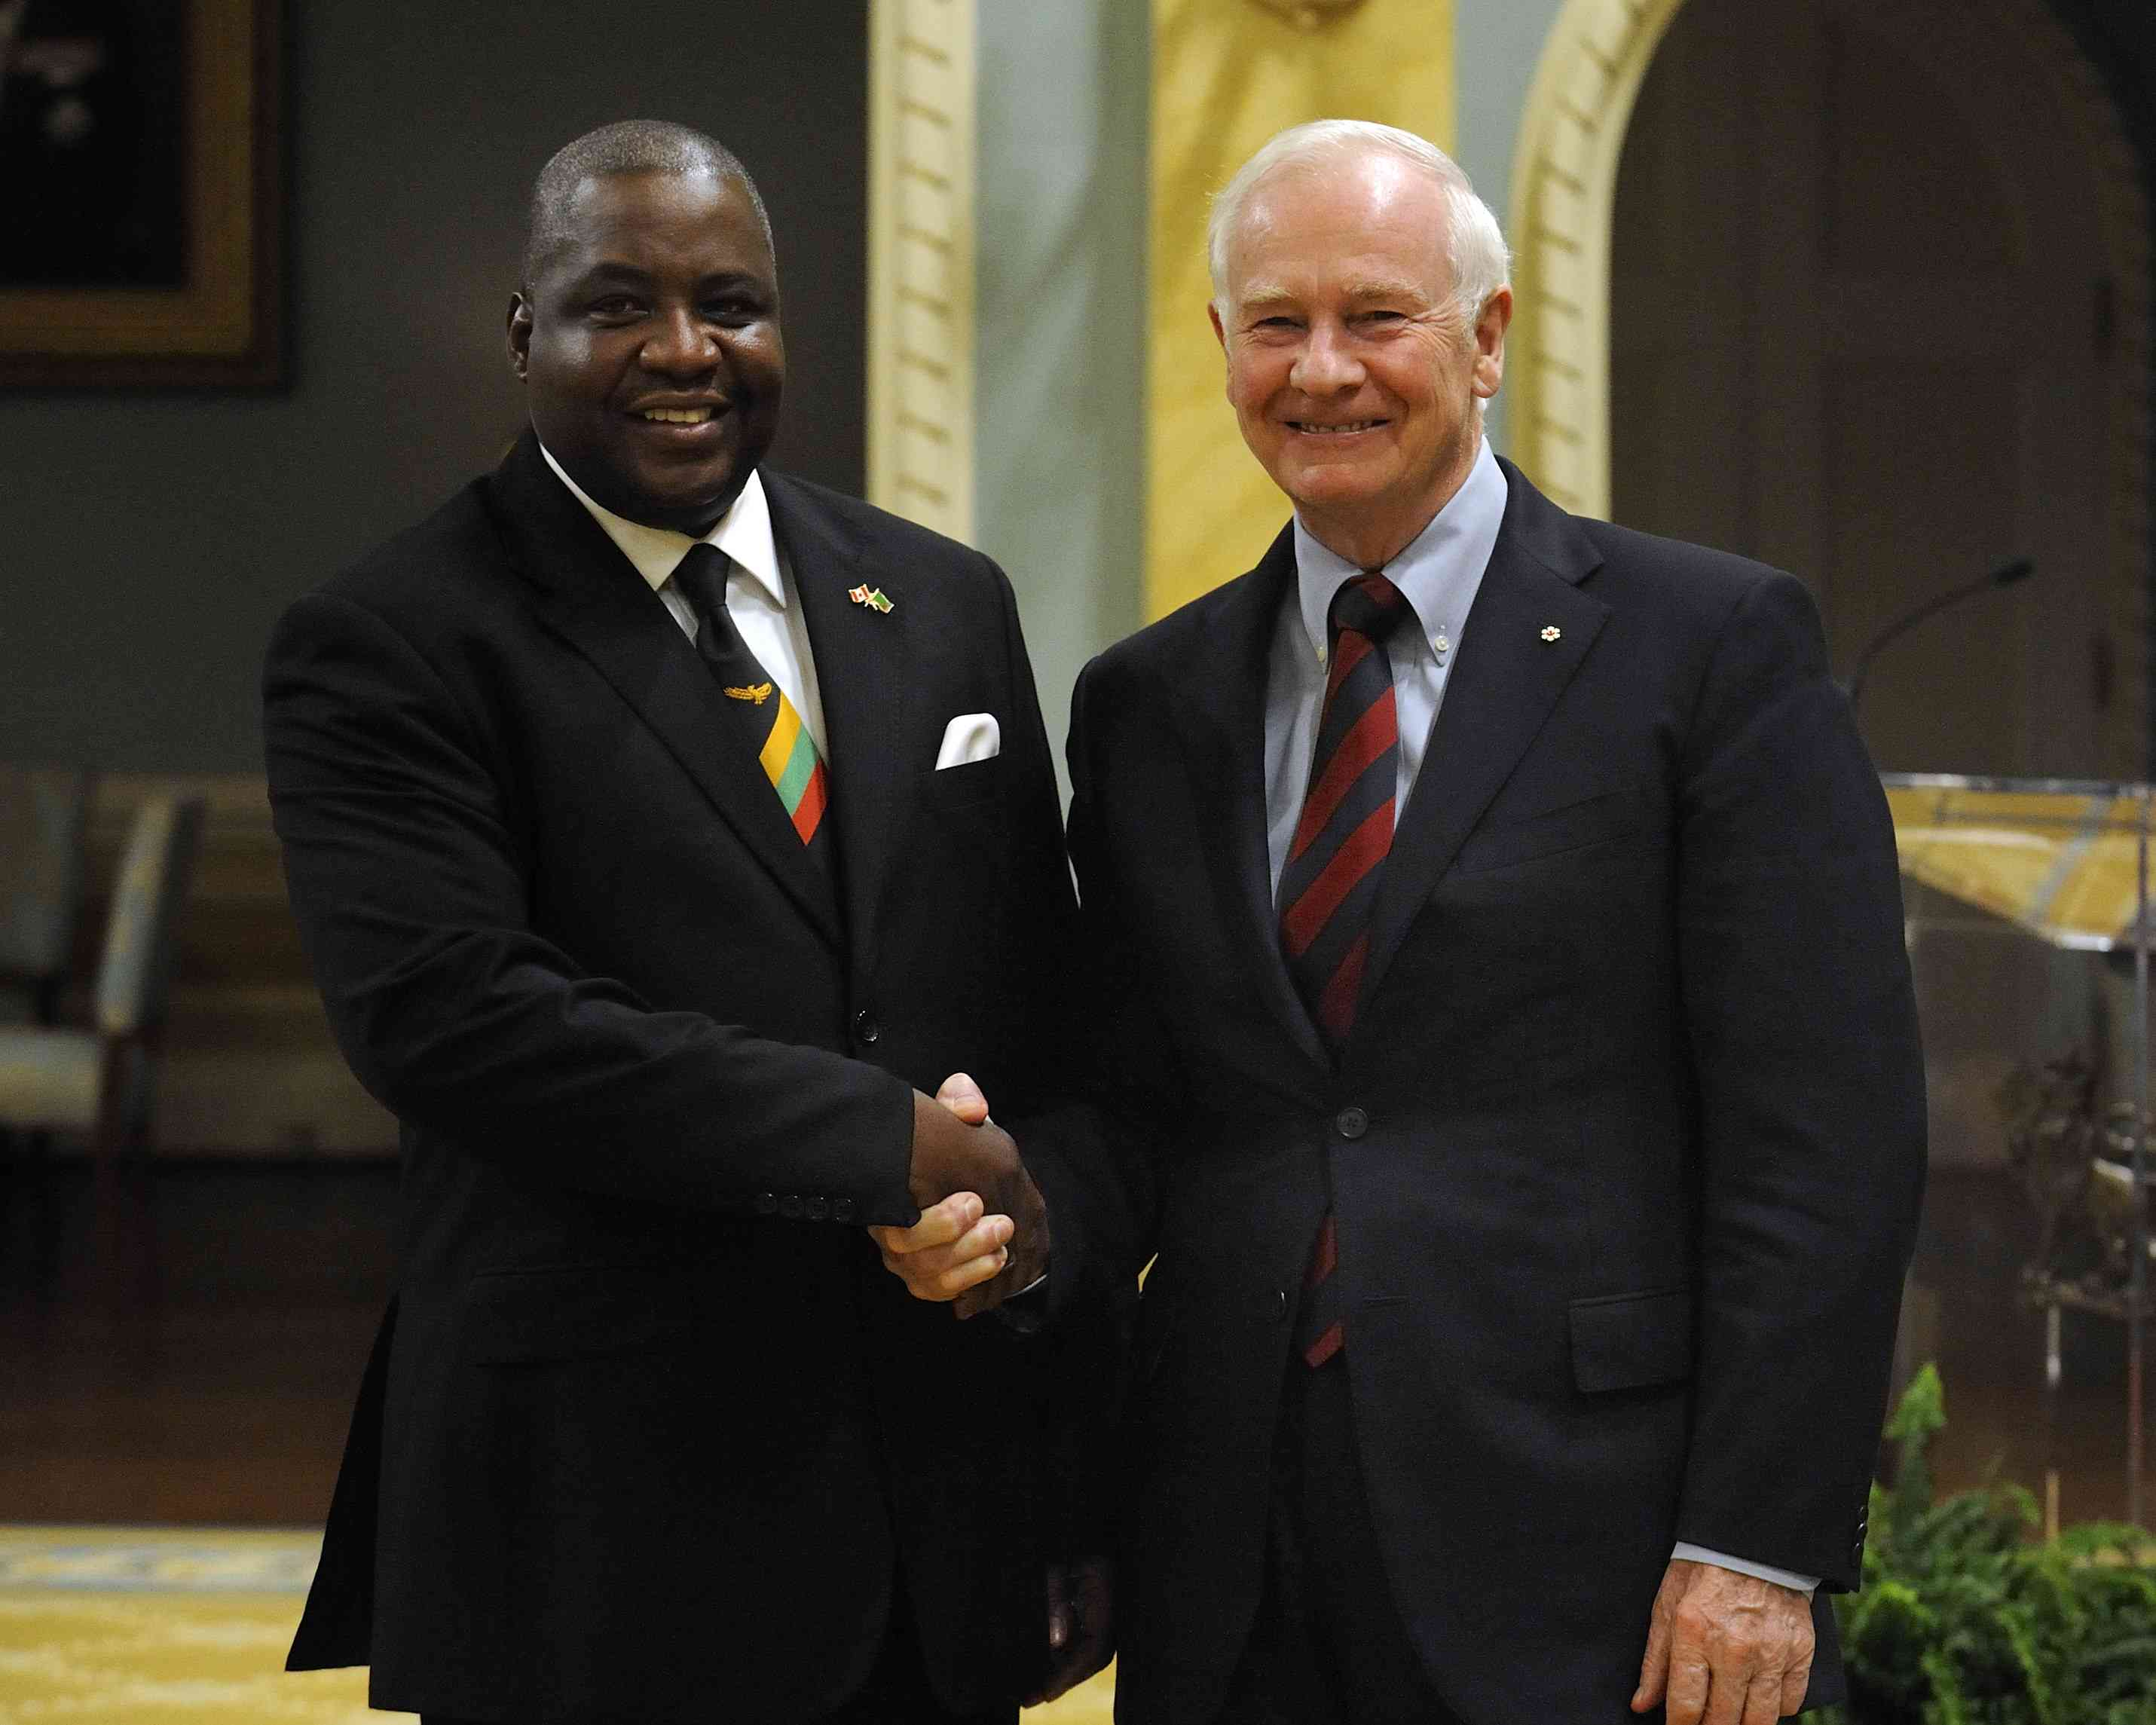 The Governor General received the credentials of His Excellency Bobby Mbunji Samakai, High Commissioner for the Republic of Zambia.